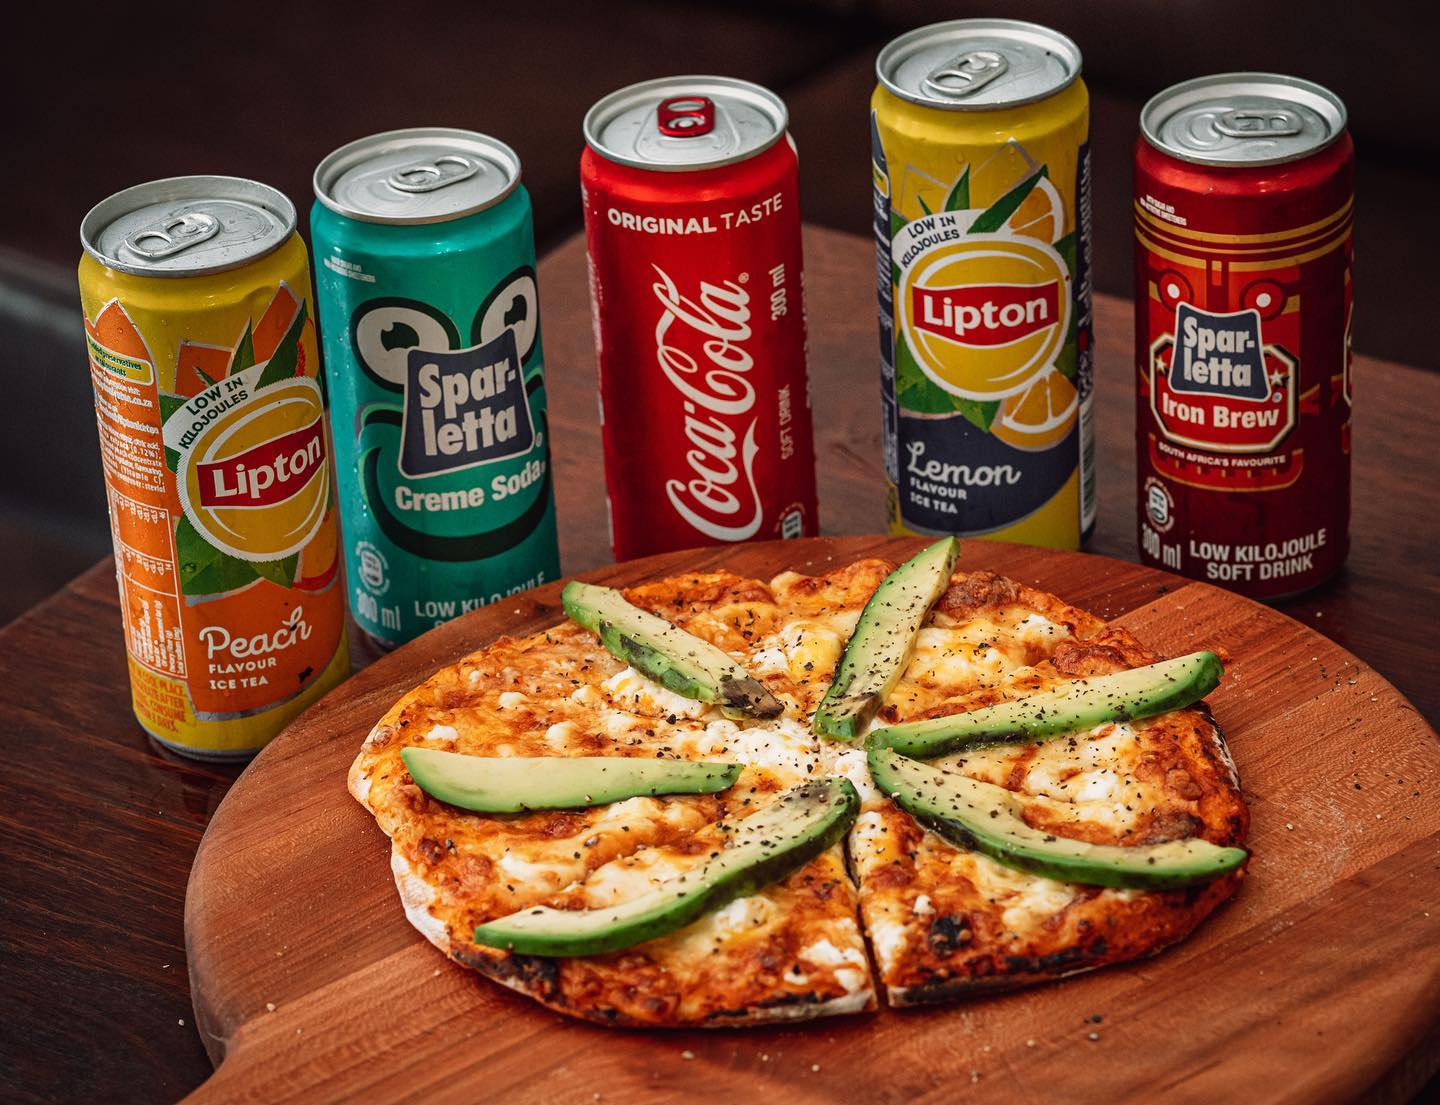 Medium Pizza and Cold drink photo